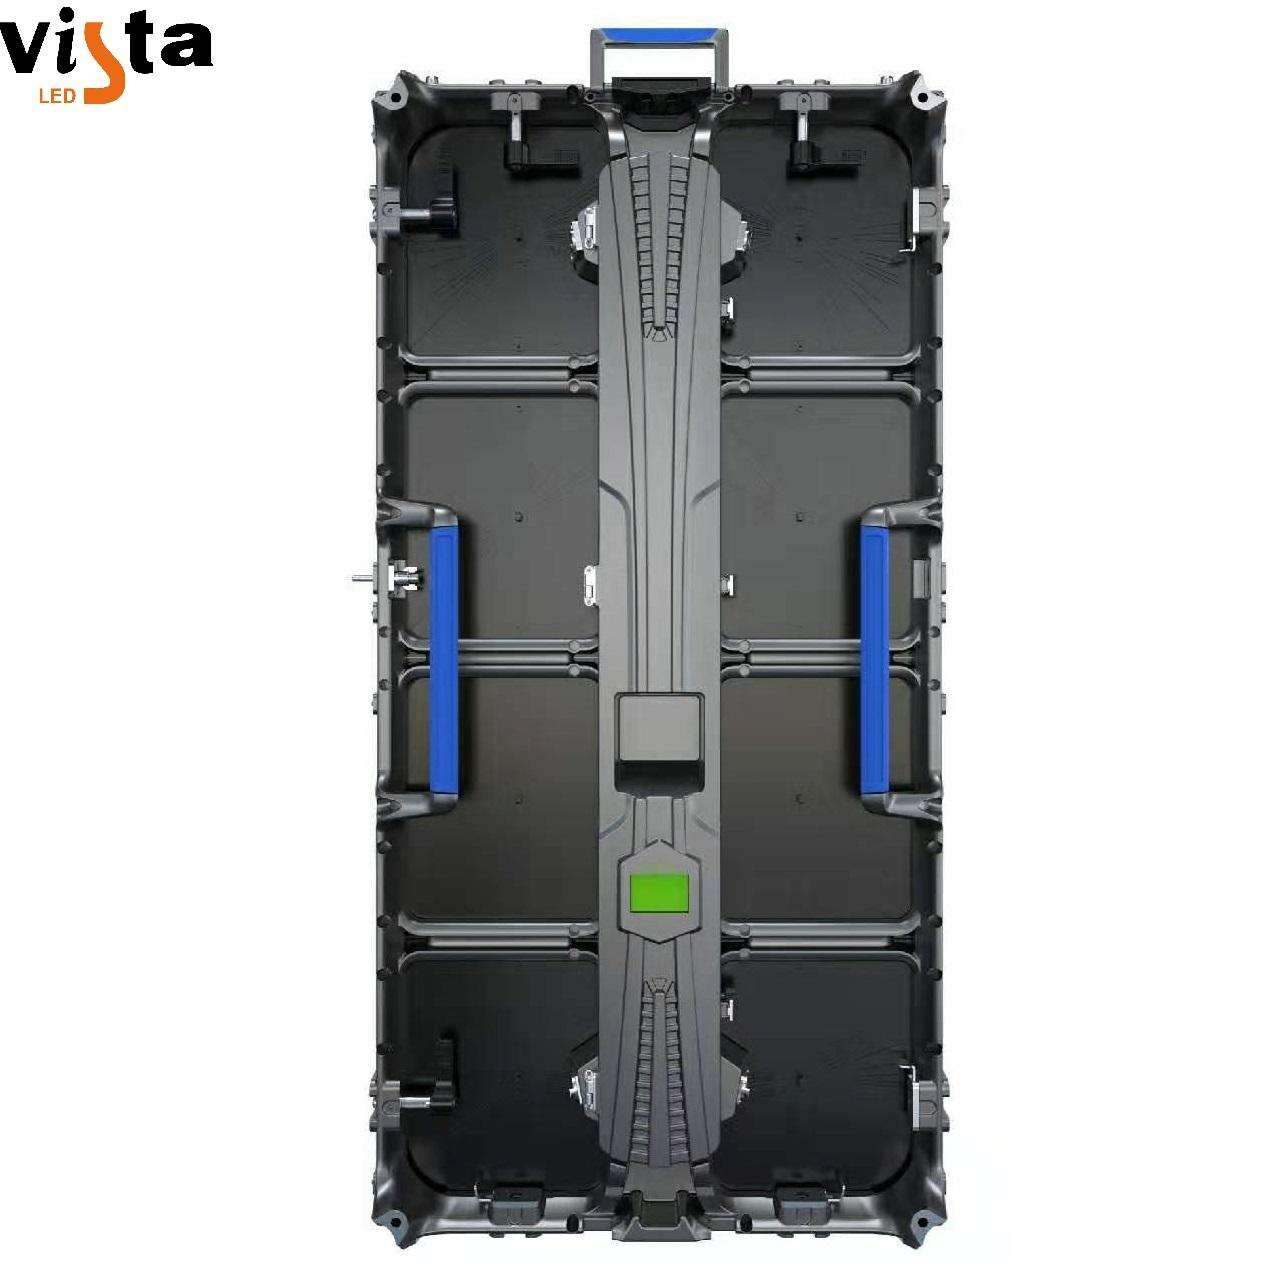 High class OLED LCD 4K HD TV Screen 500x500mm Cabinet indoor p2.6 2.604mm Ph2.6 led mobile module for events concert